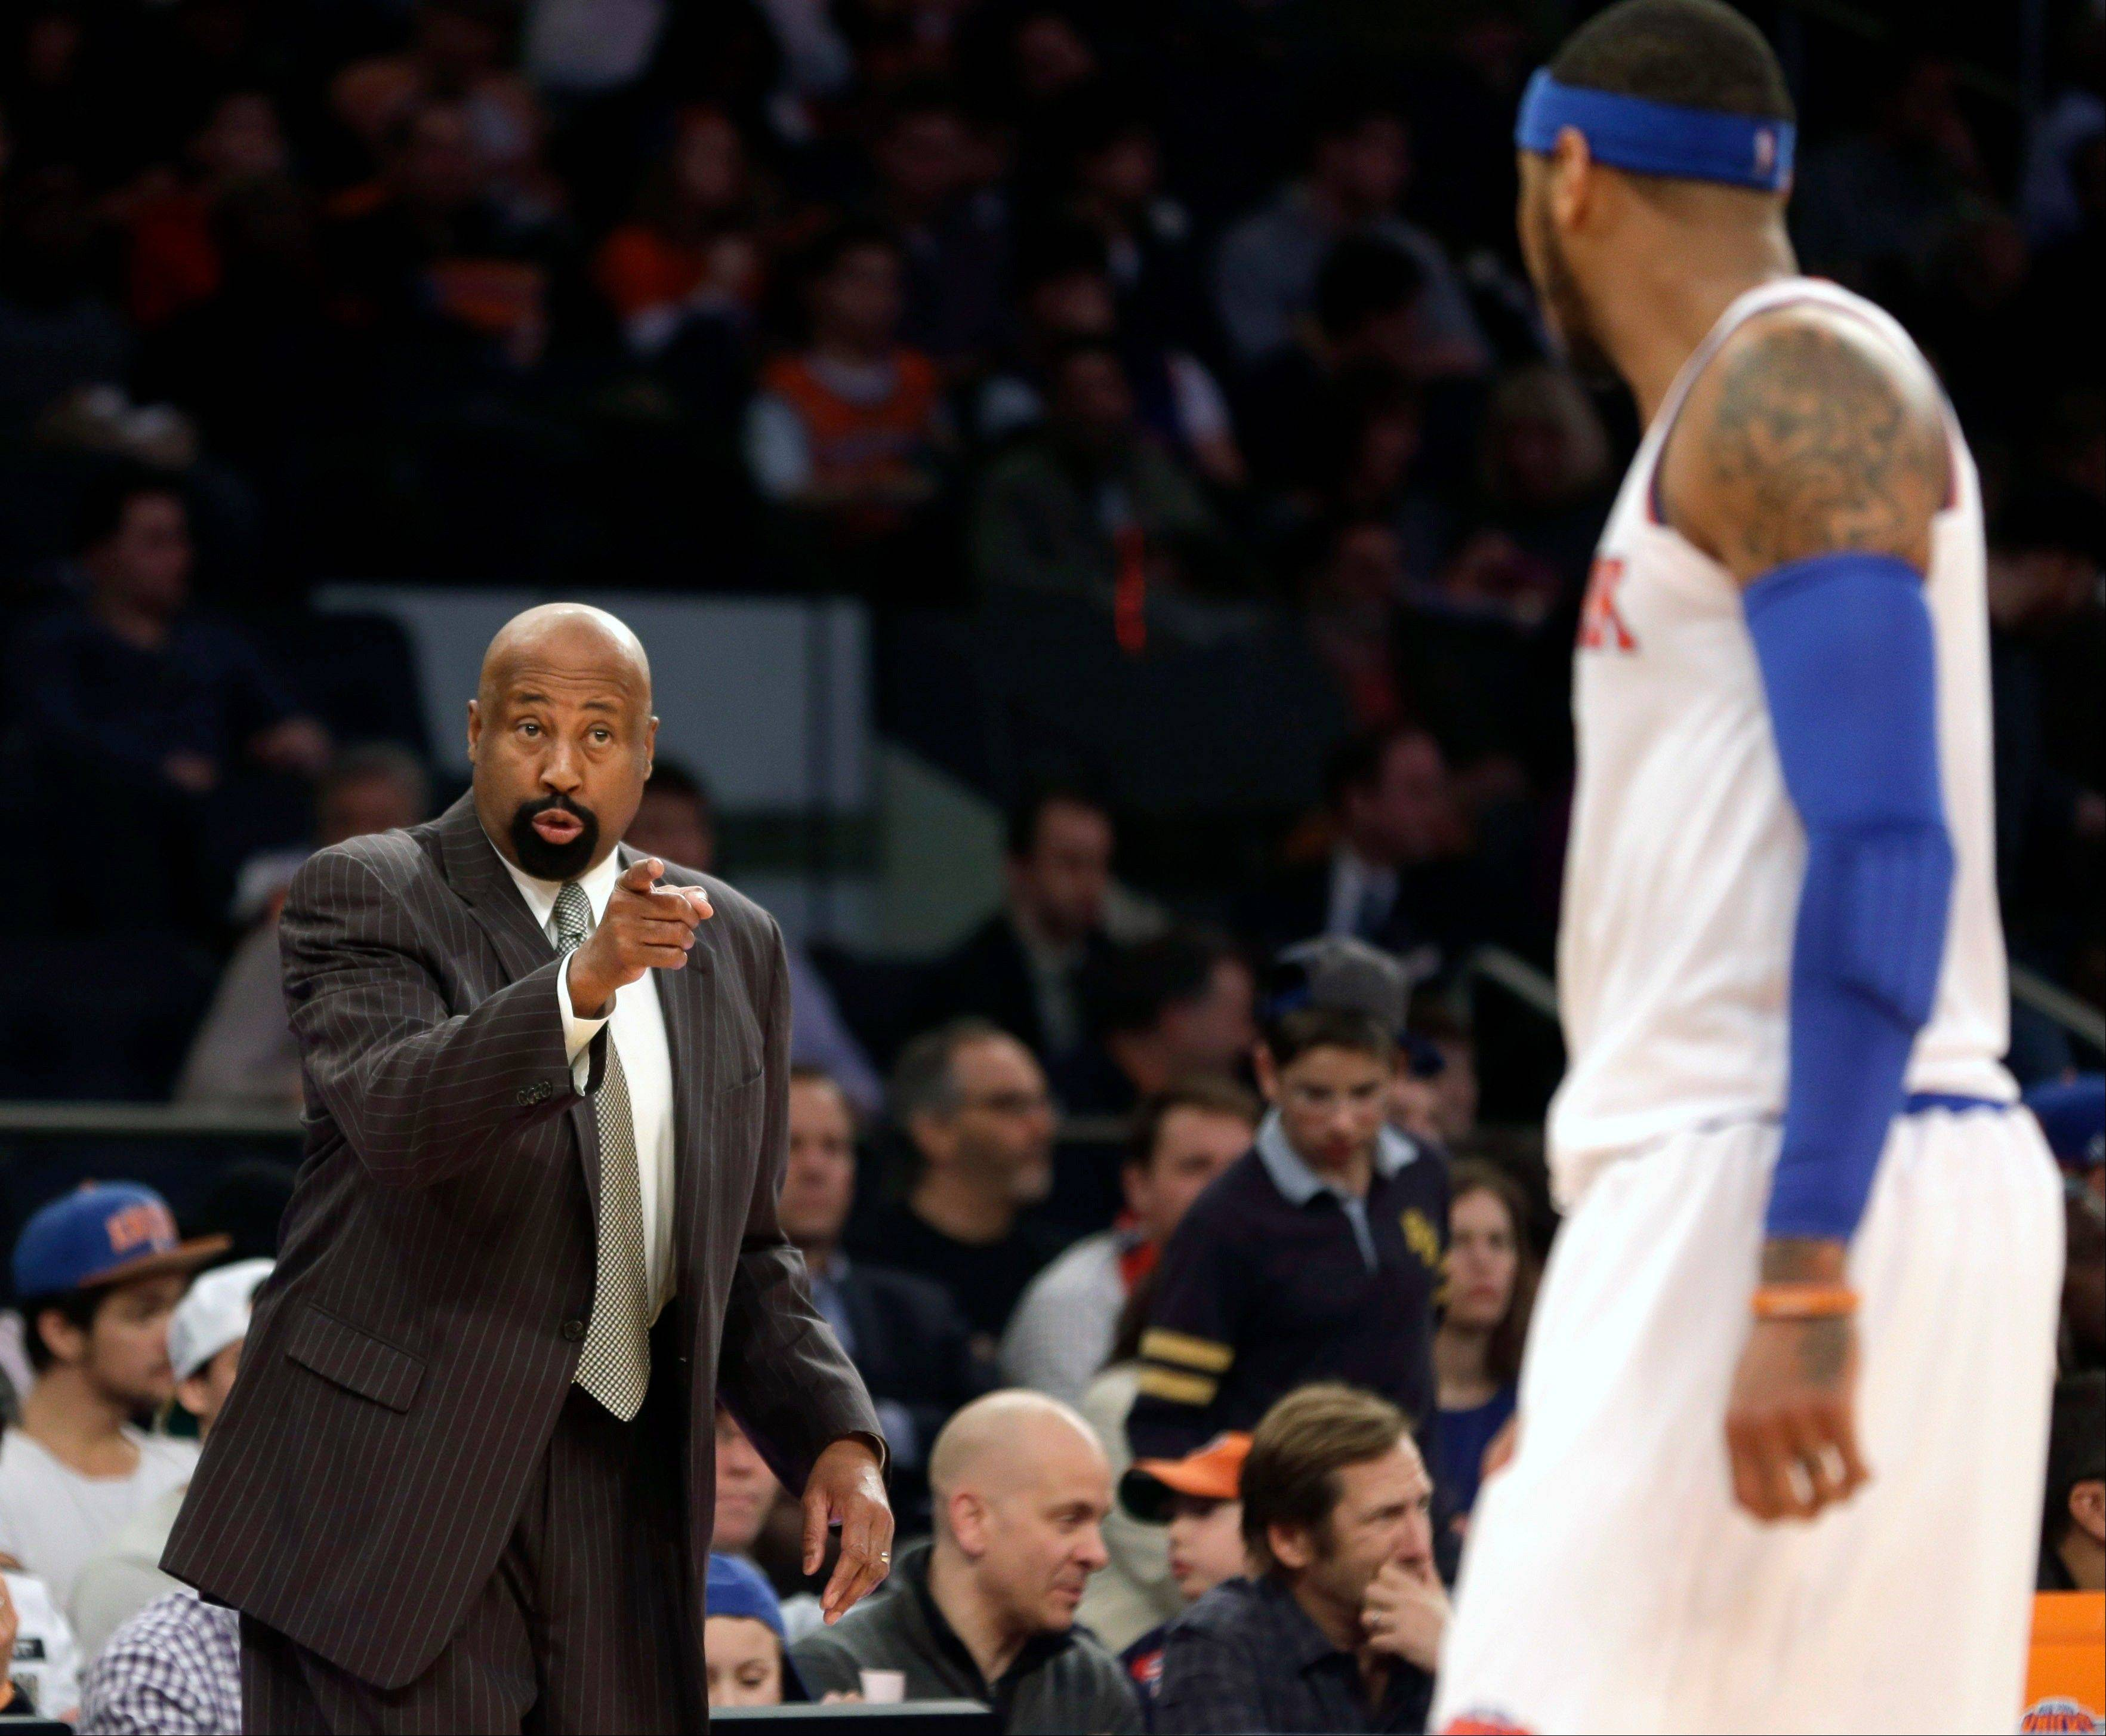 New York Knicks� head coach Mike Woodson, left, talks with Carmelo Anthony during the second half of an NBA basketball game at Madison Square Garden, Sunday, Jan. 26, 2014, in New York. The Knicks defeated the Lakers 110-103.